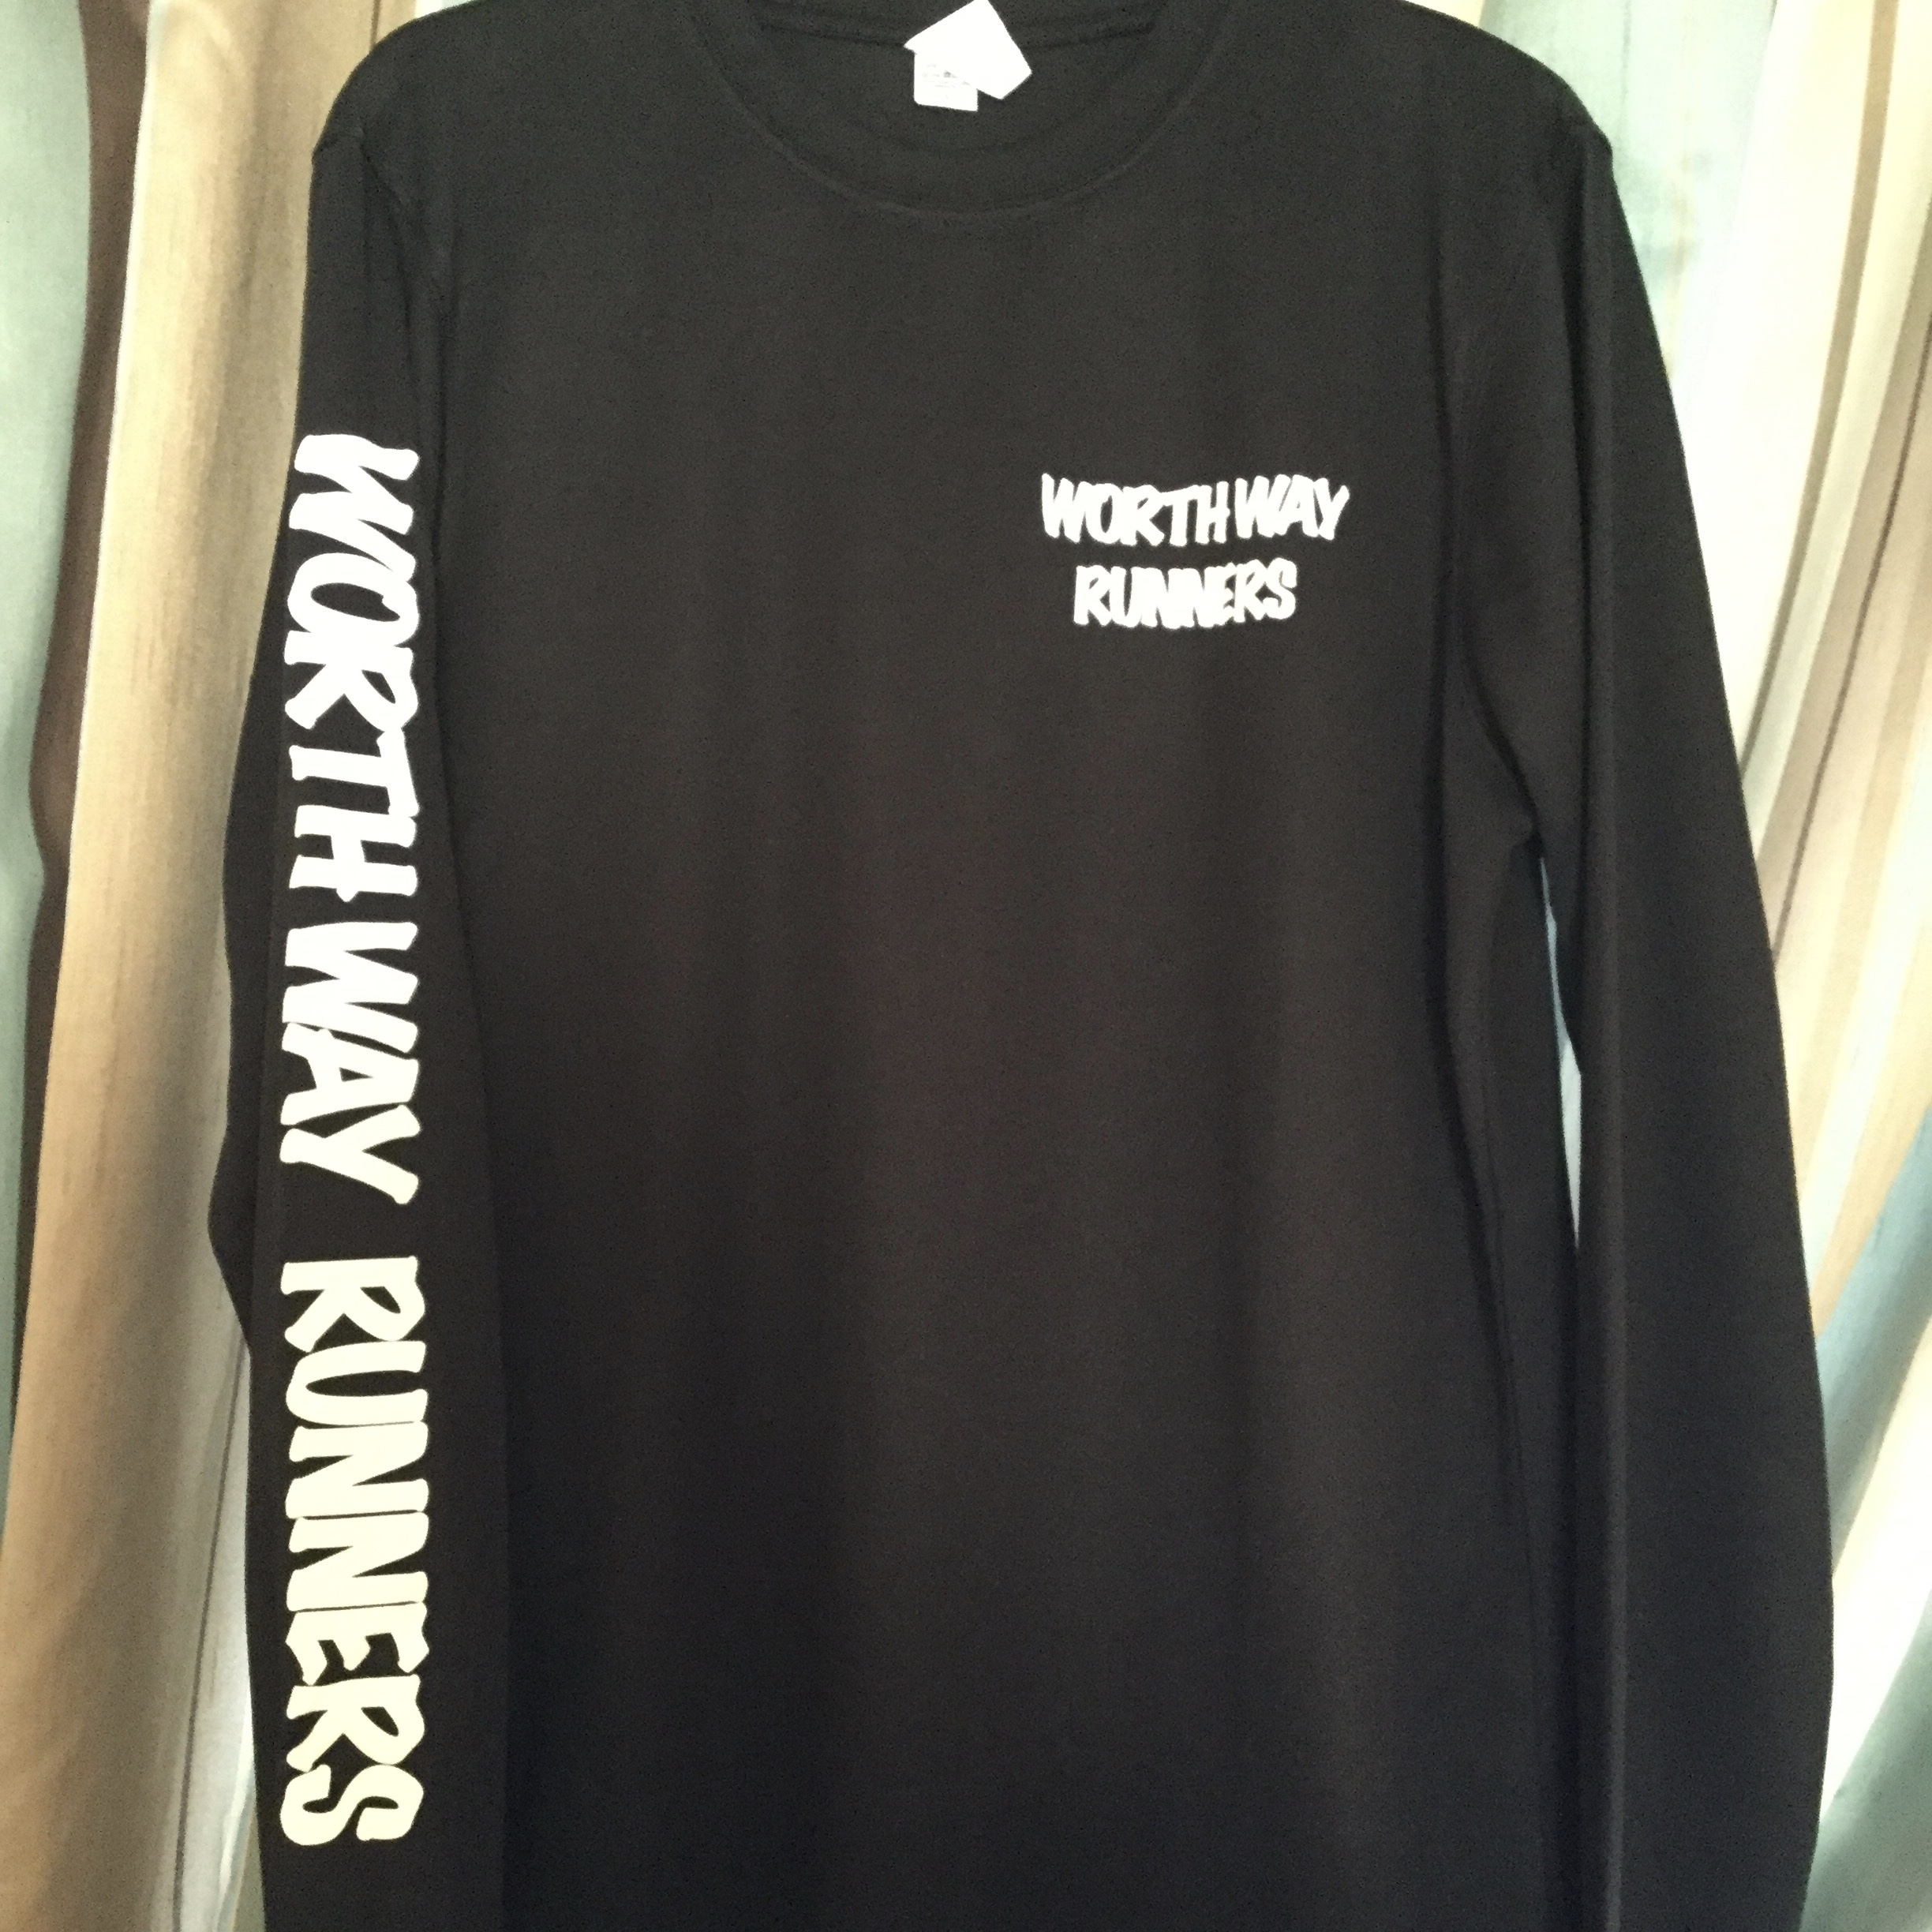 Worth Way Runners - Unisex Black Long Sleeve Shirt